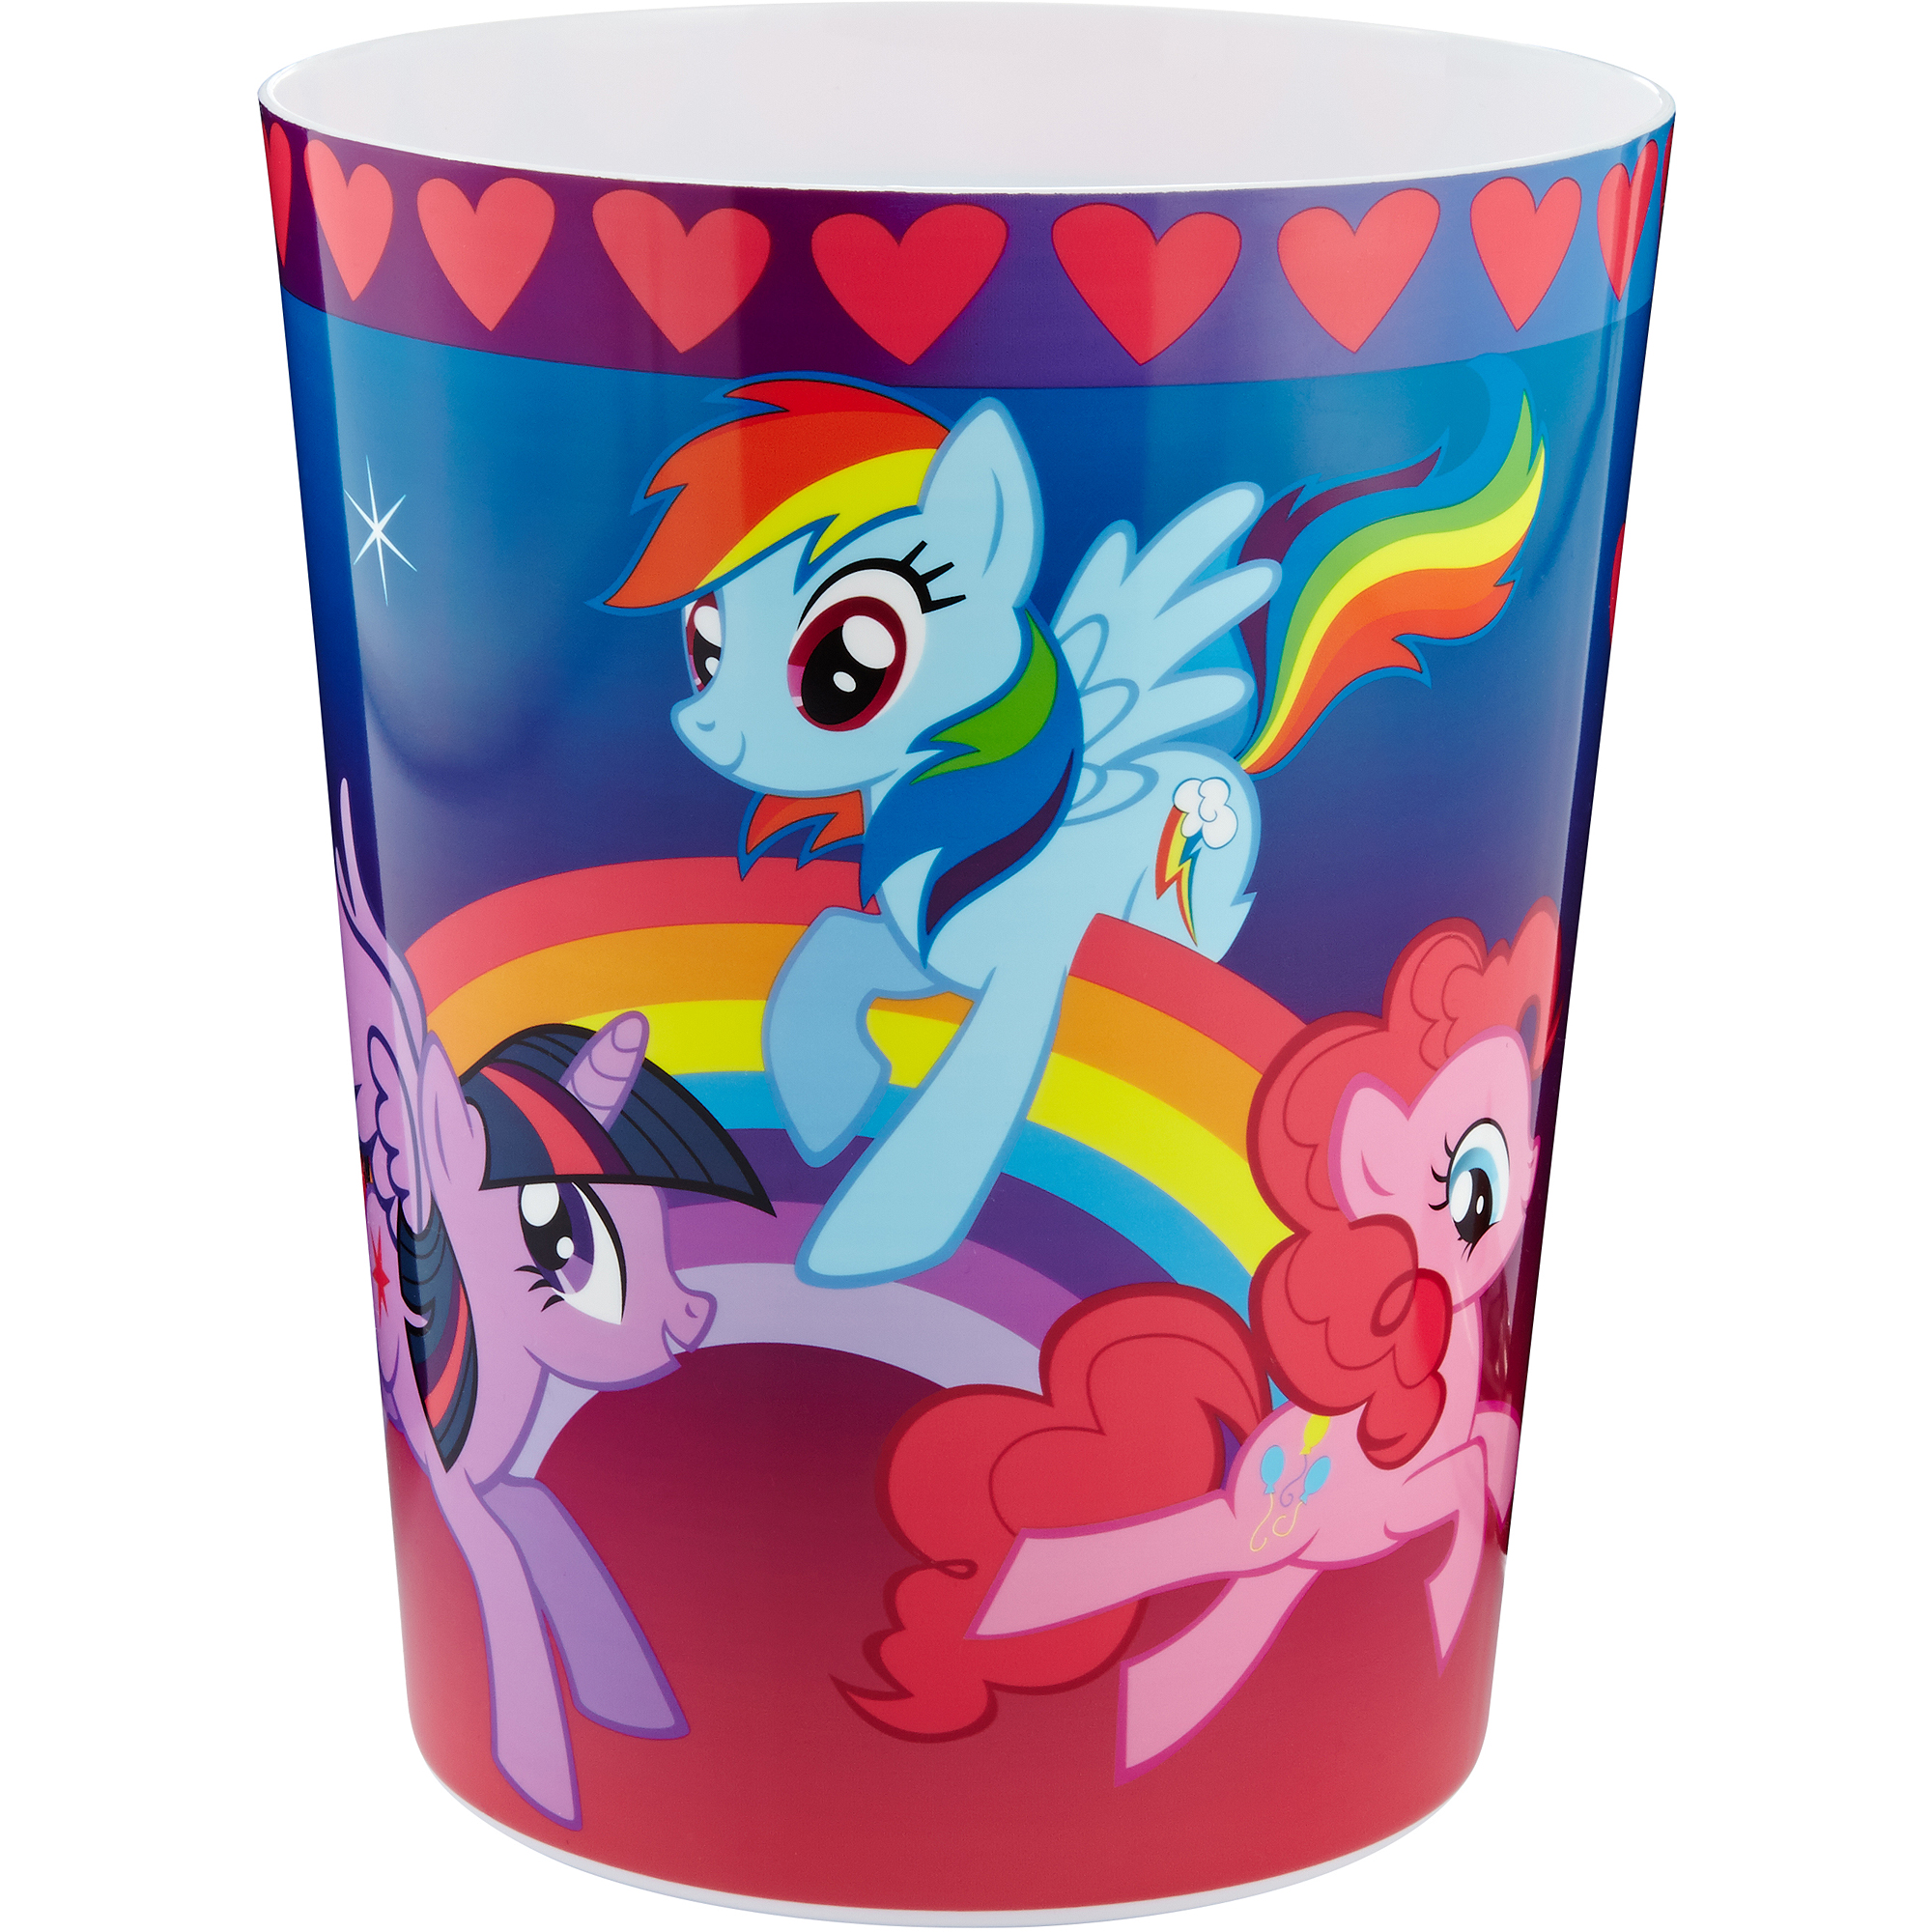 Hasbrou0027s My Little Pony Waste Basket   Walmart.com